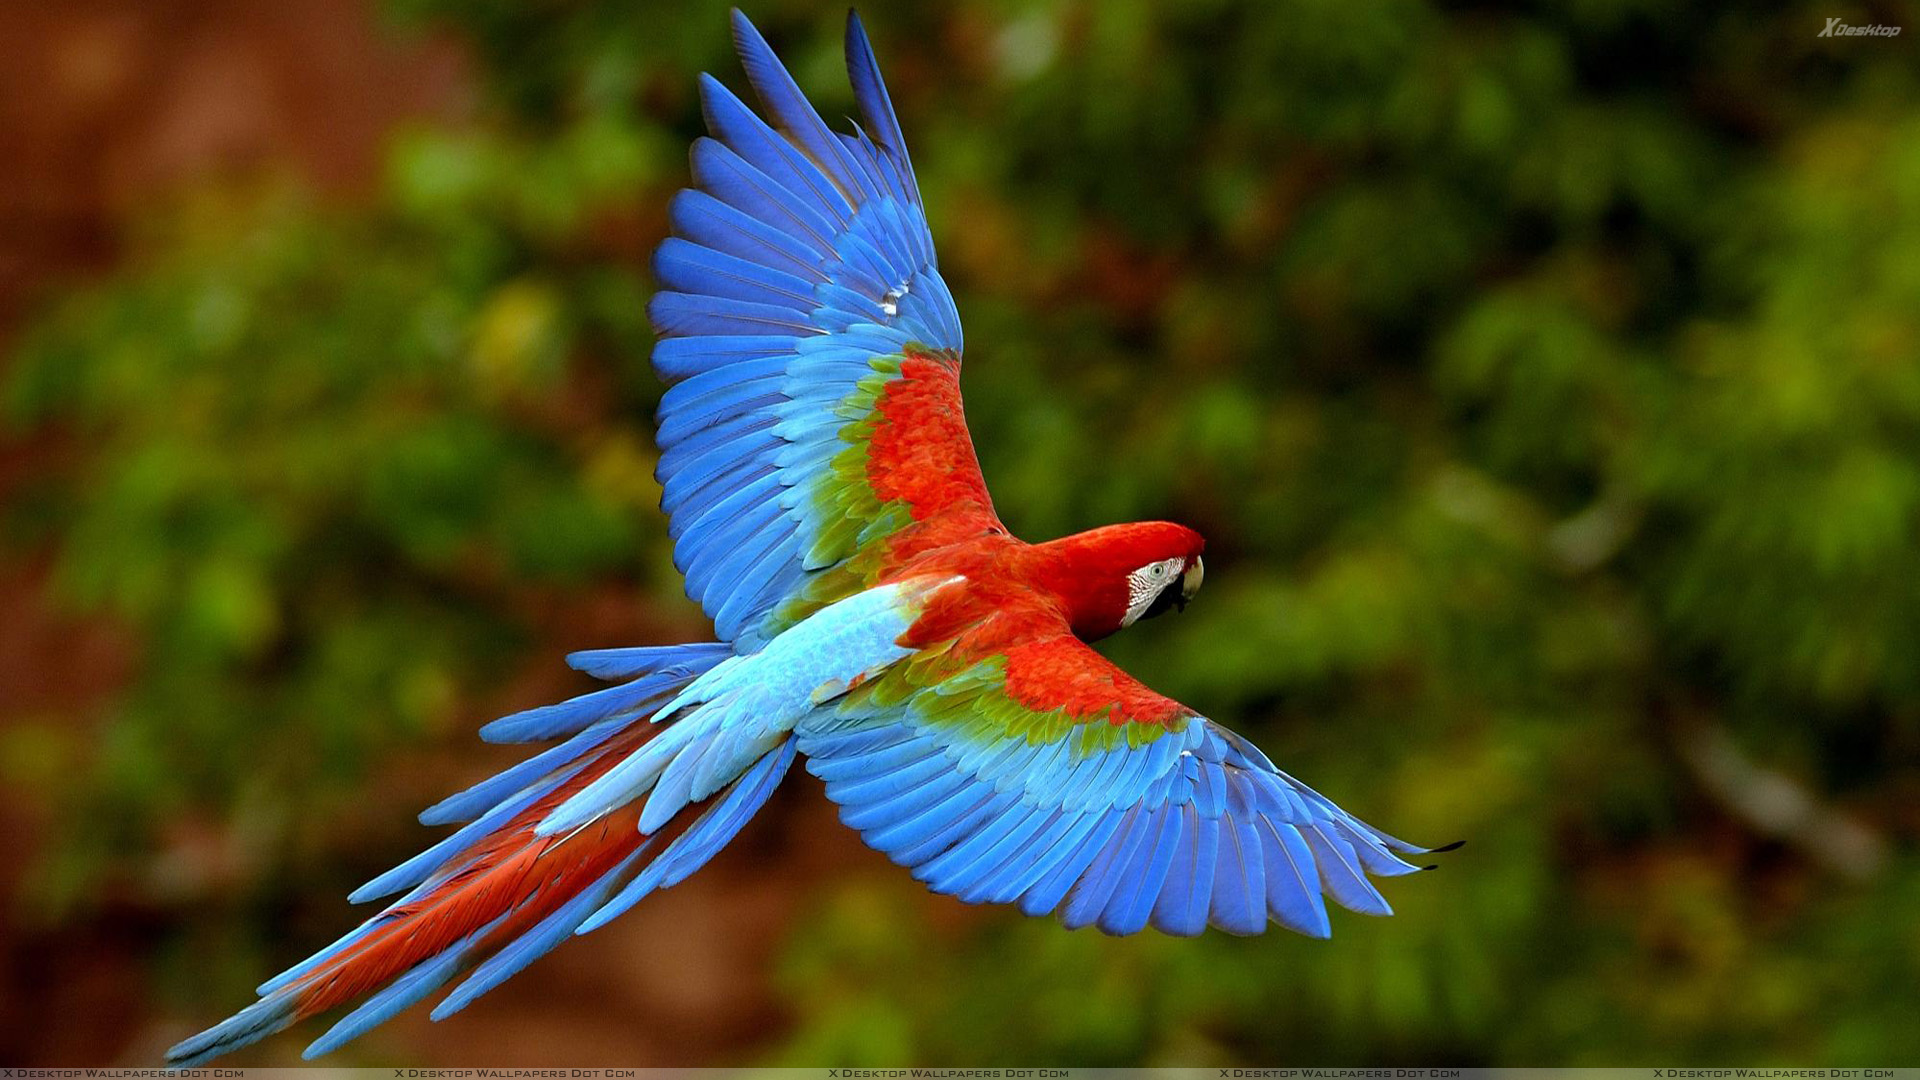 Blue Birds Wallpapers, Photos & Images in HD